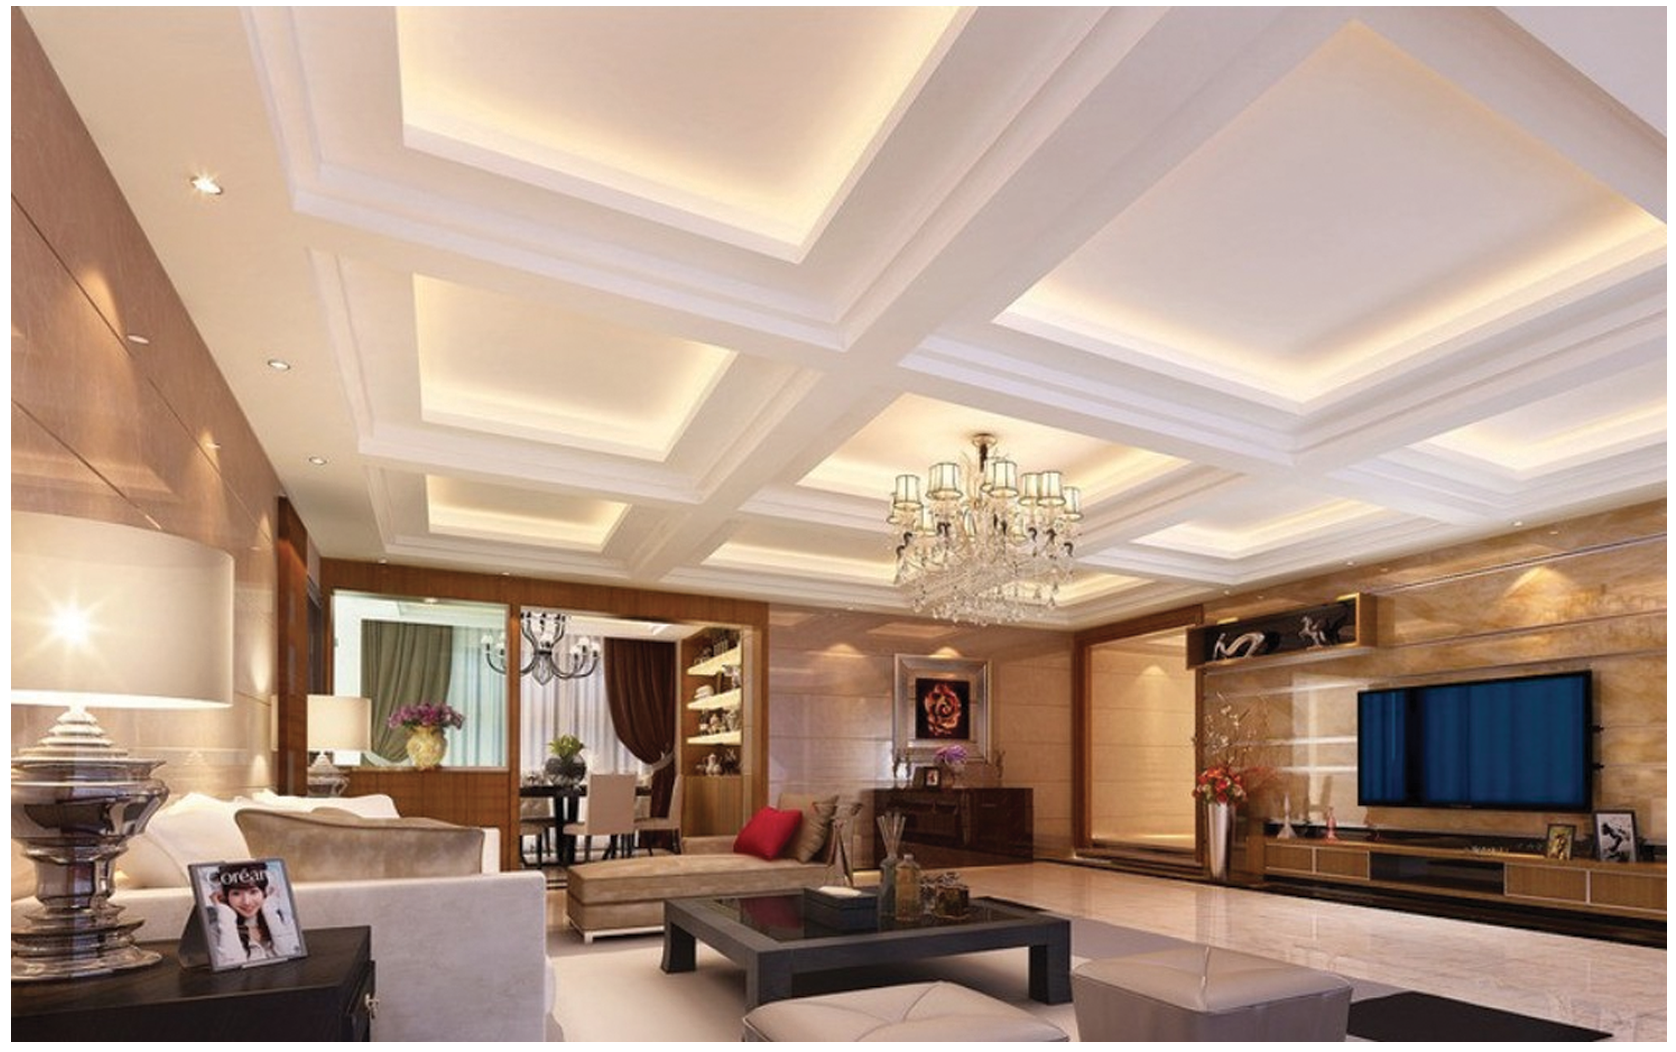 coffered ceiling lighting. coffered coffered ceiling lighting with on t & Coffered Ceiling Lighting. Coffered Coffered Ceiling Lighting With ...